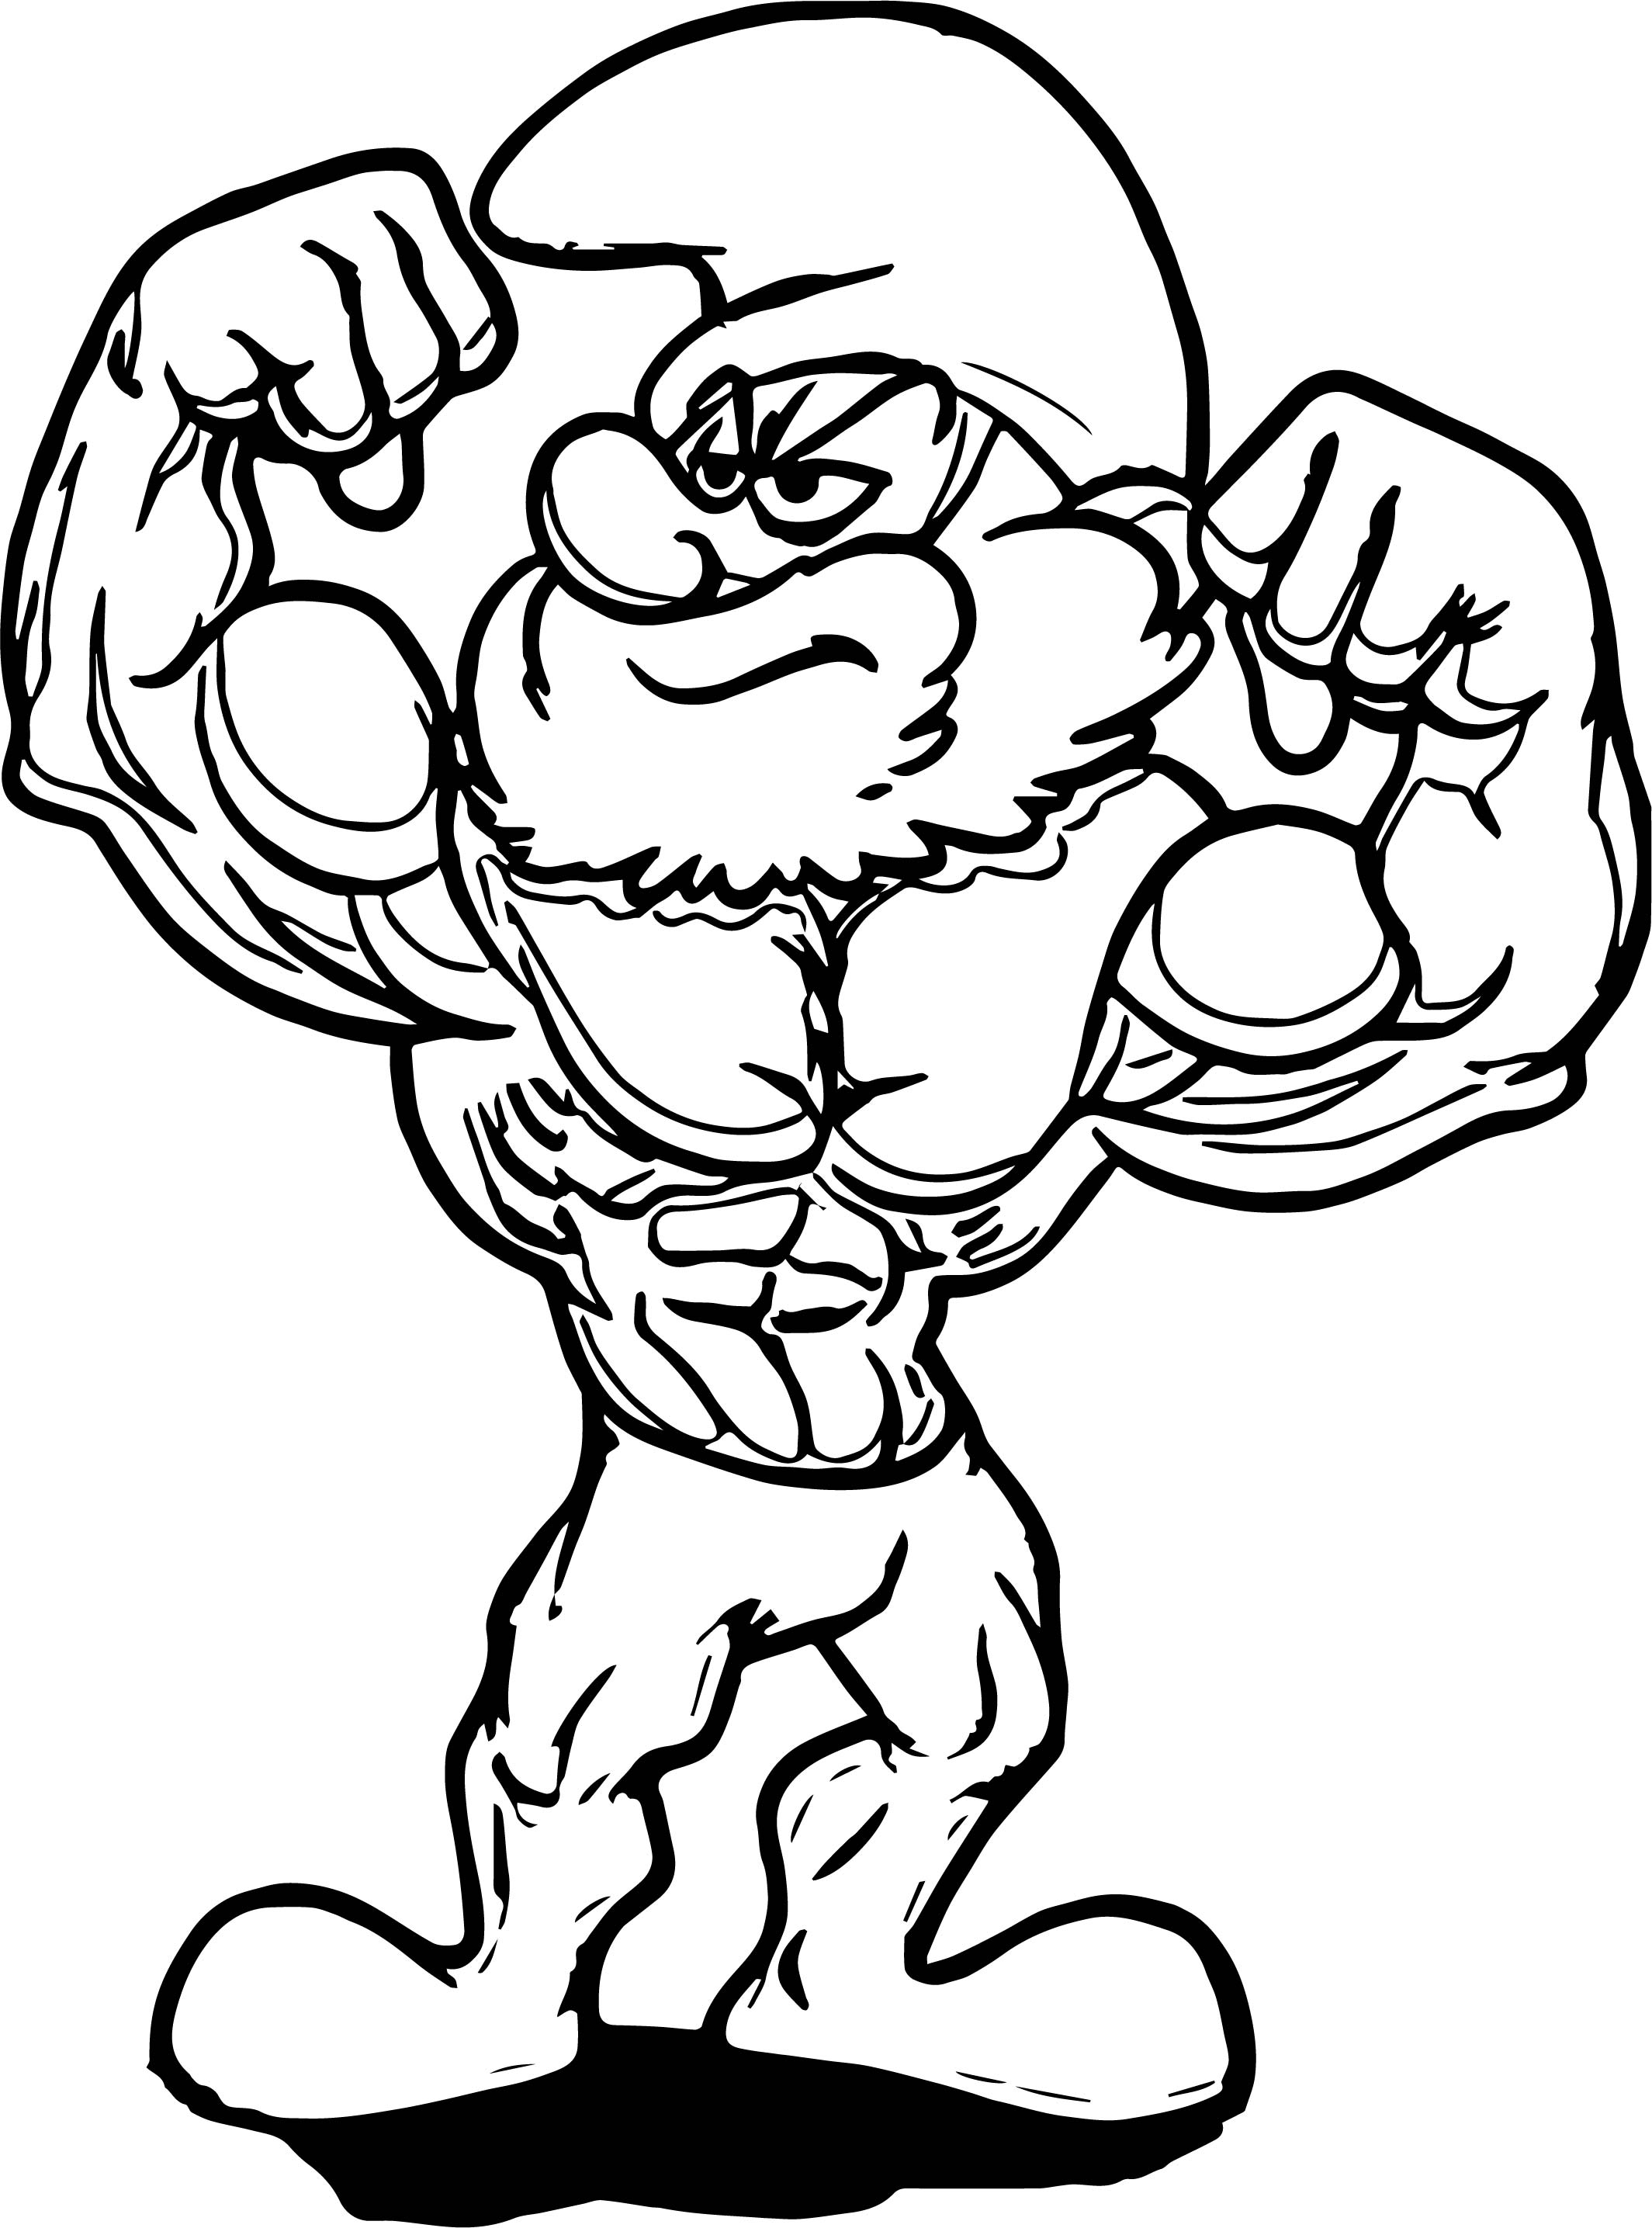 Poster Large Strong Papa Smurf Coloring Page